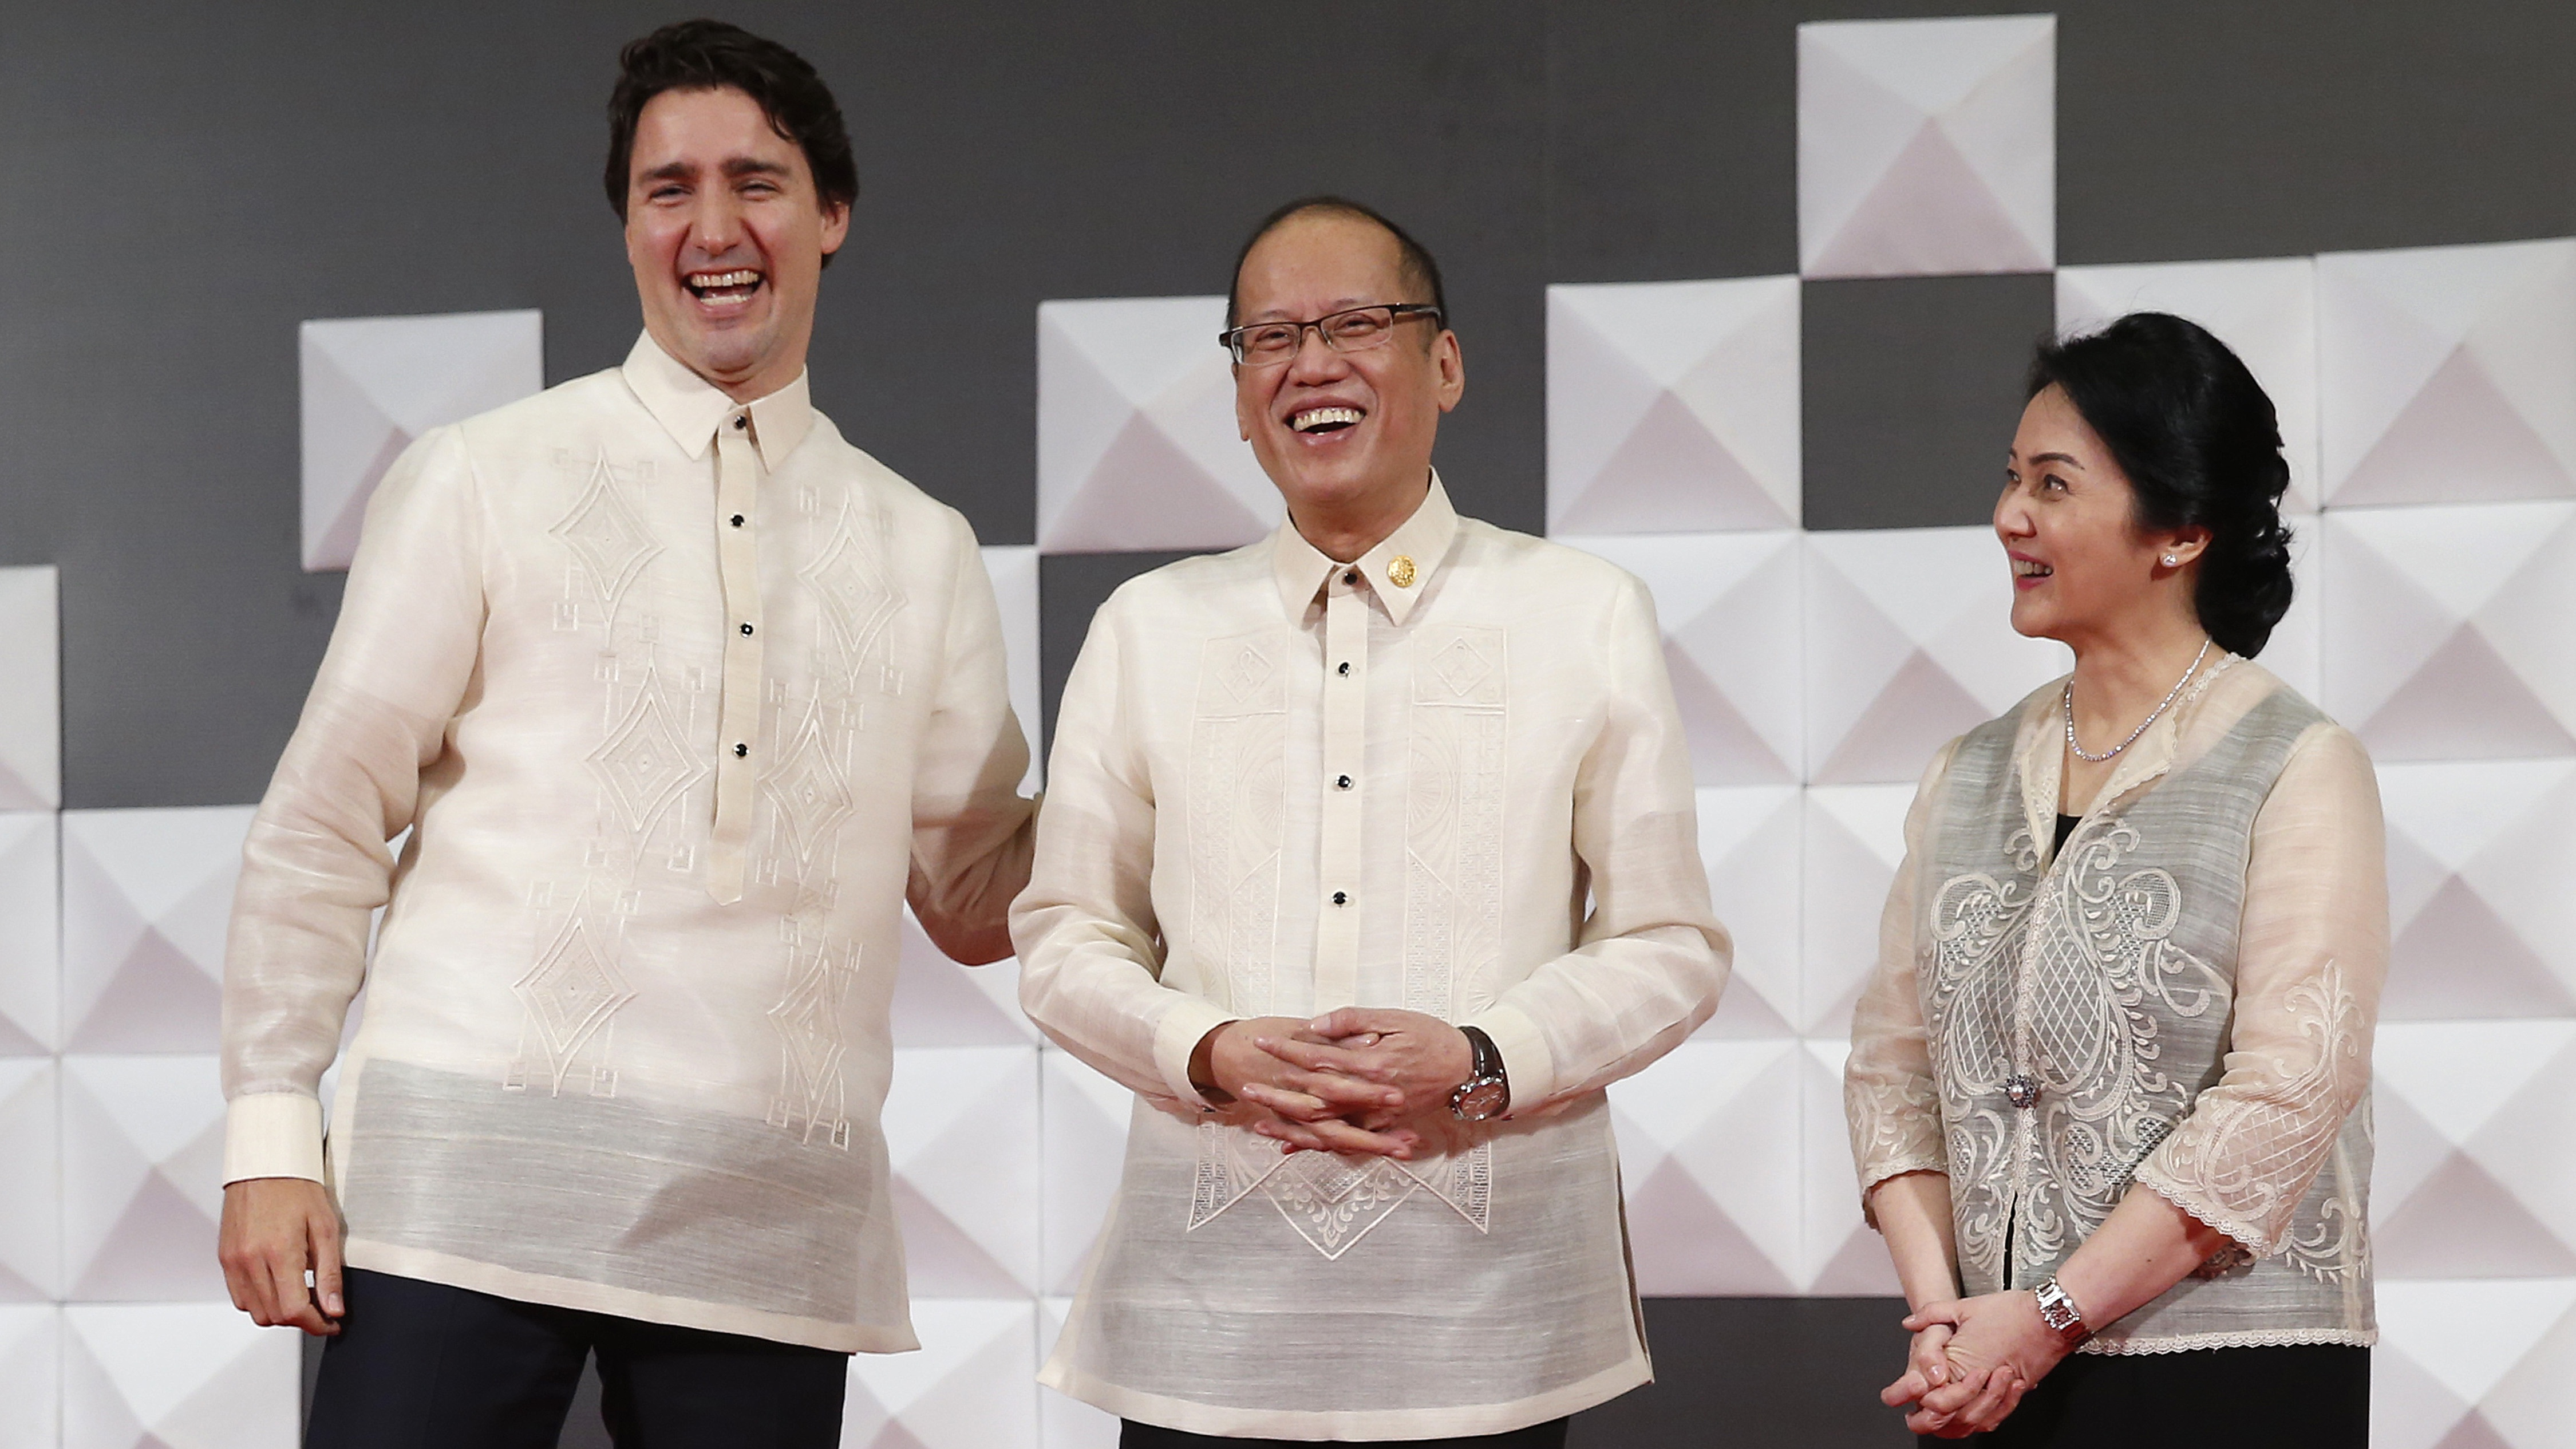 Canadian Prime Minister Justin Trudeau, left, shares a moment with Philippines President Benigno Aquino III and his sister Maria Elena Aquino-Cruz as they pose for a photograph at the welcoming dinner for the Asia-Pacific Economic Cooperation (APEC) summit in Manila, Philippines, Wednesday, Nov. 18, 2015. Leaders from 21 countries and self-governing territories are gathering in Manila for the Asia-Pacific Economic Cooperation summit. The meeting's official agenda is focused on trade, business and economic issues but terrorism, South China Sea disputes and climate change are also set to be in focus.